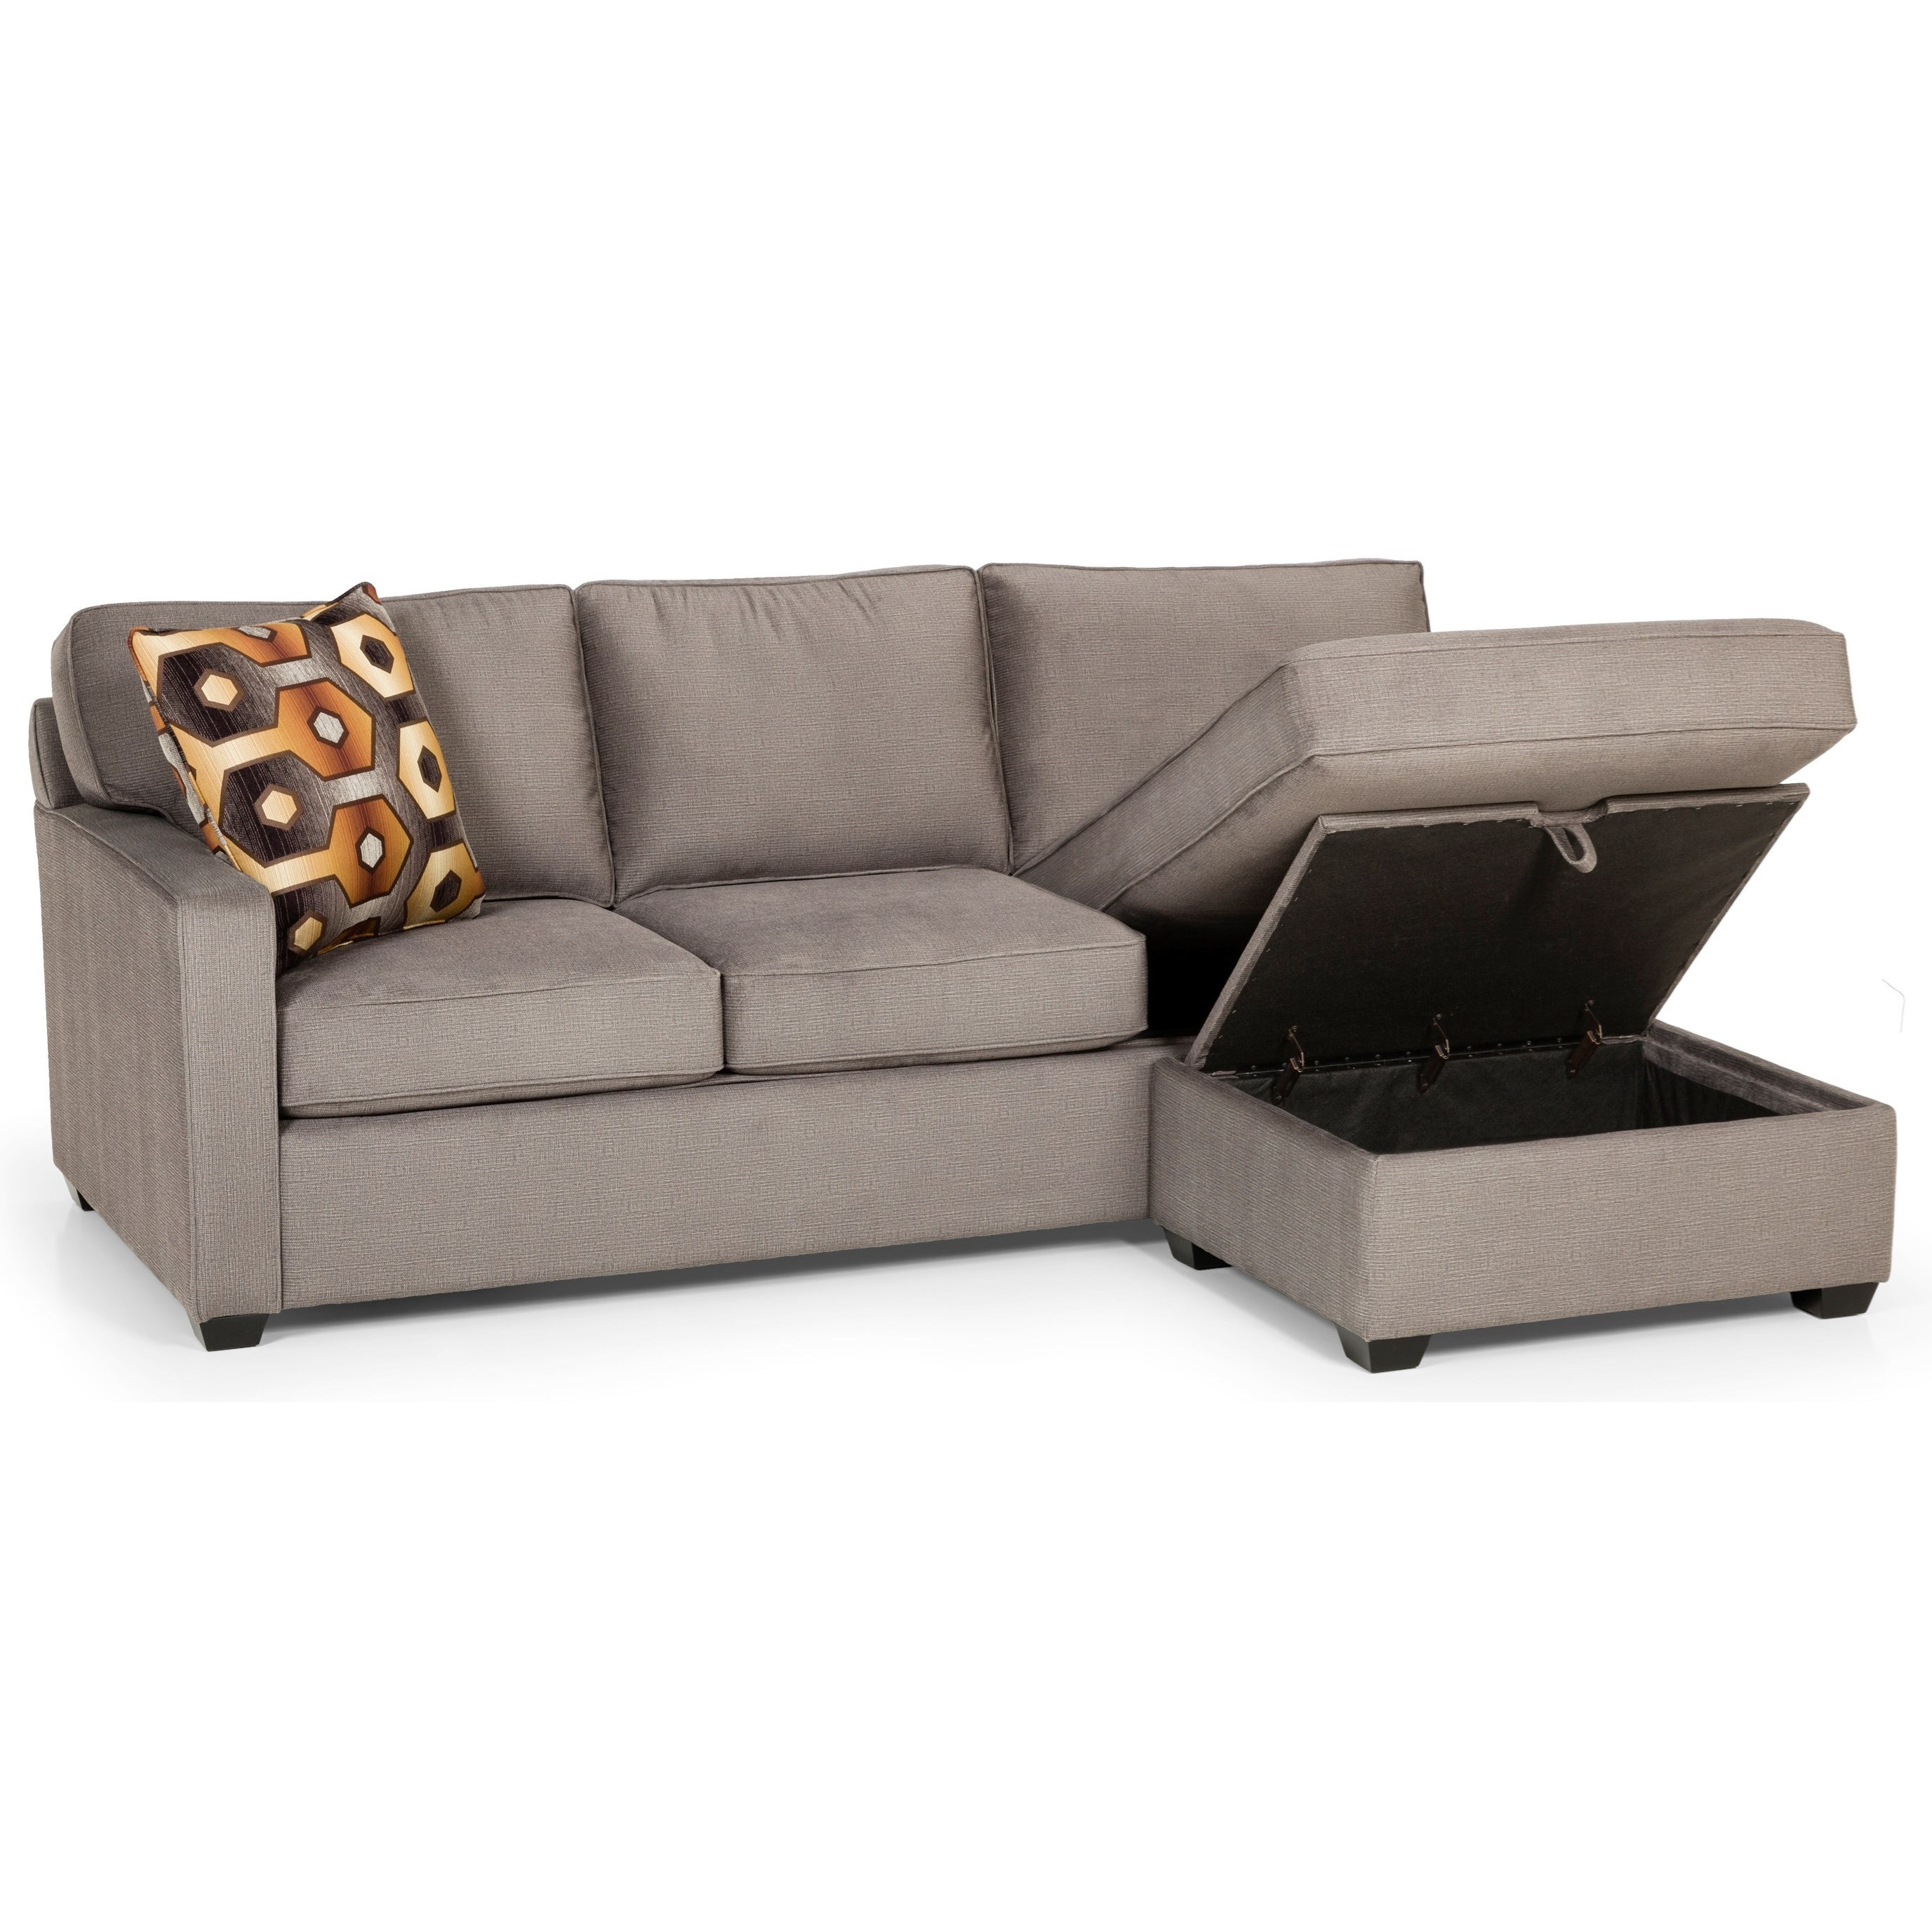 Stanton 403 Casual Sofa Chaise Queen Basic Sleeper with Storage